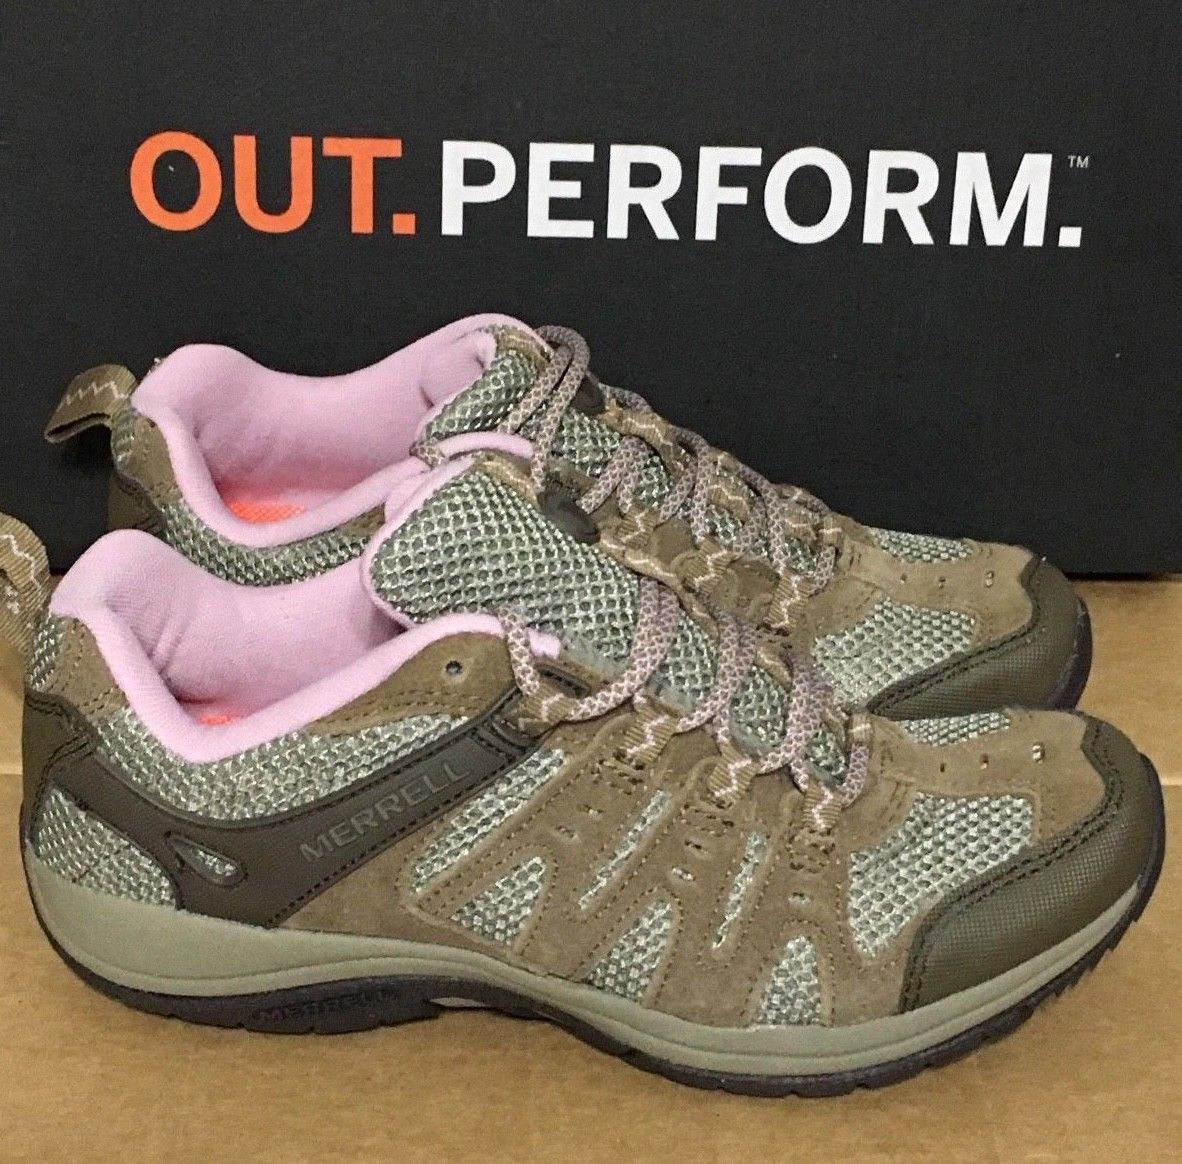 MERRELL ZEOLITE ACCENT WOMEN'S HIKING SHOE, SIZE 6, OTTER/LILAC, J321251C